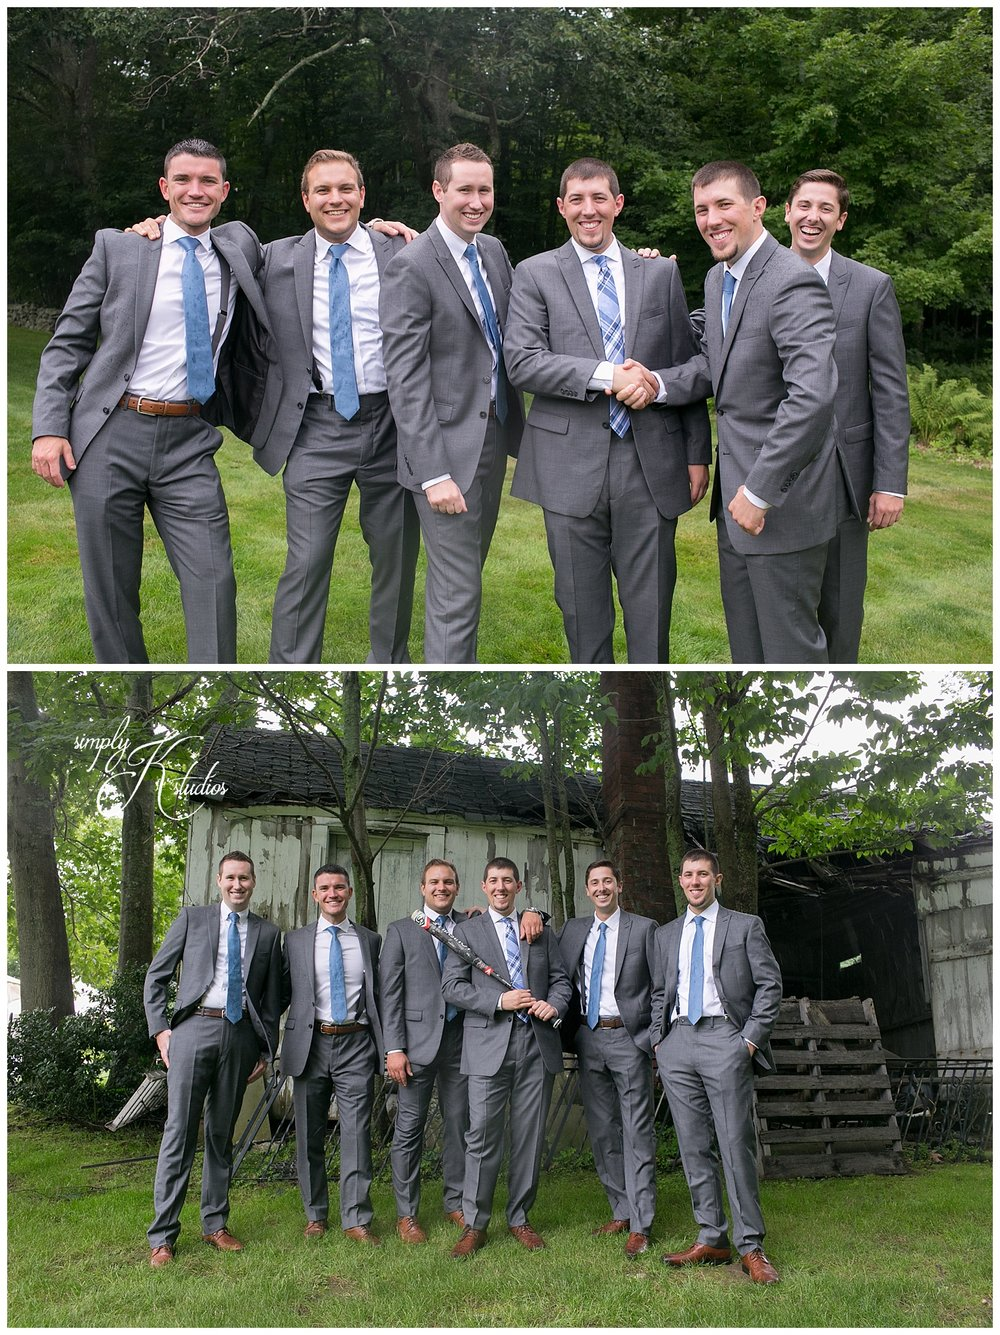 Groomsmen Photos at Harrington Farm.jpg